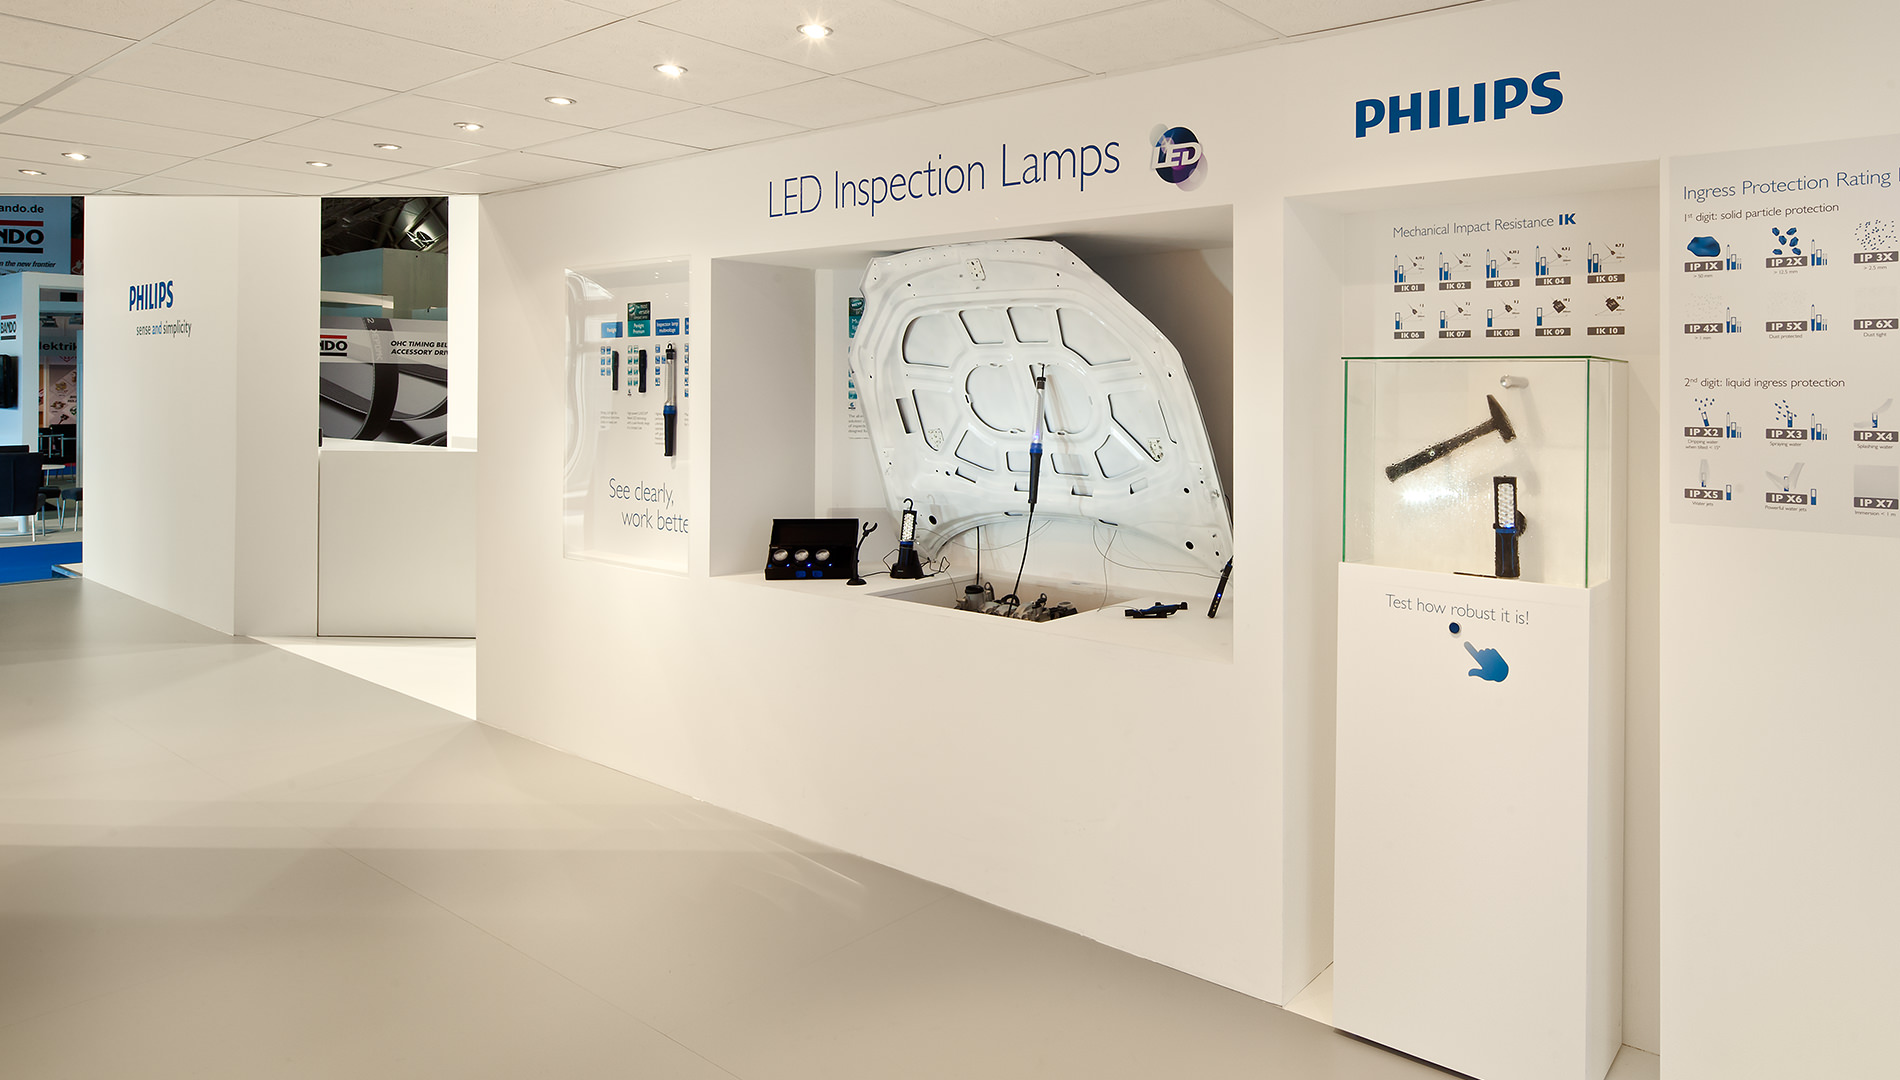 Messe Design Live Kommunikation Frankfurt Philips Automotive Lighting LED Inspection Lamps Going Places EventLabs